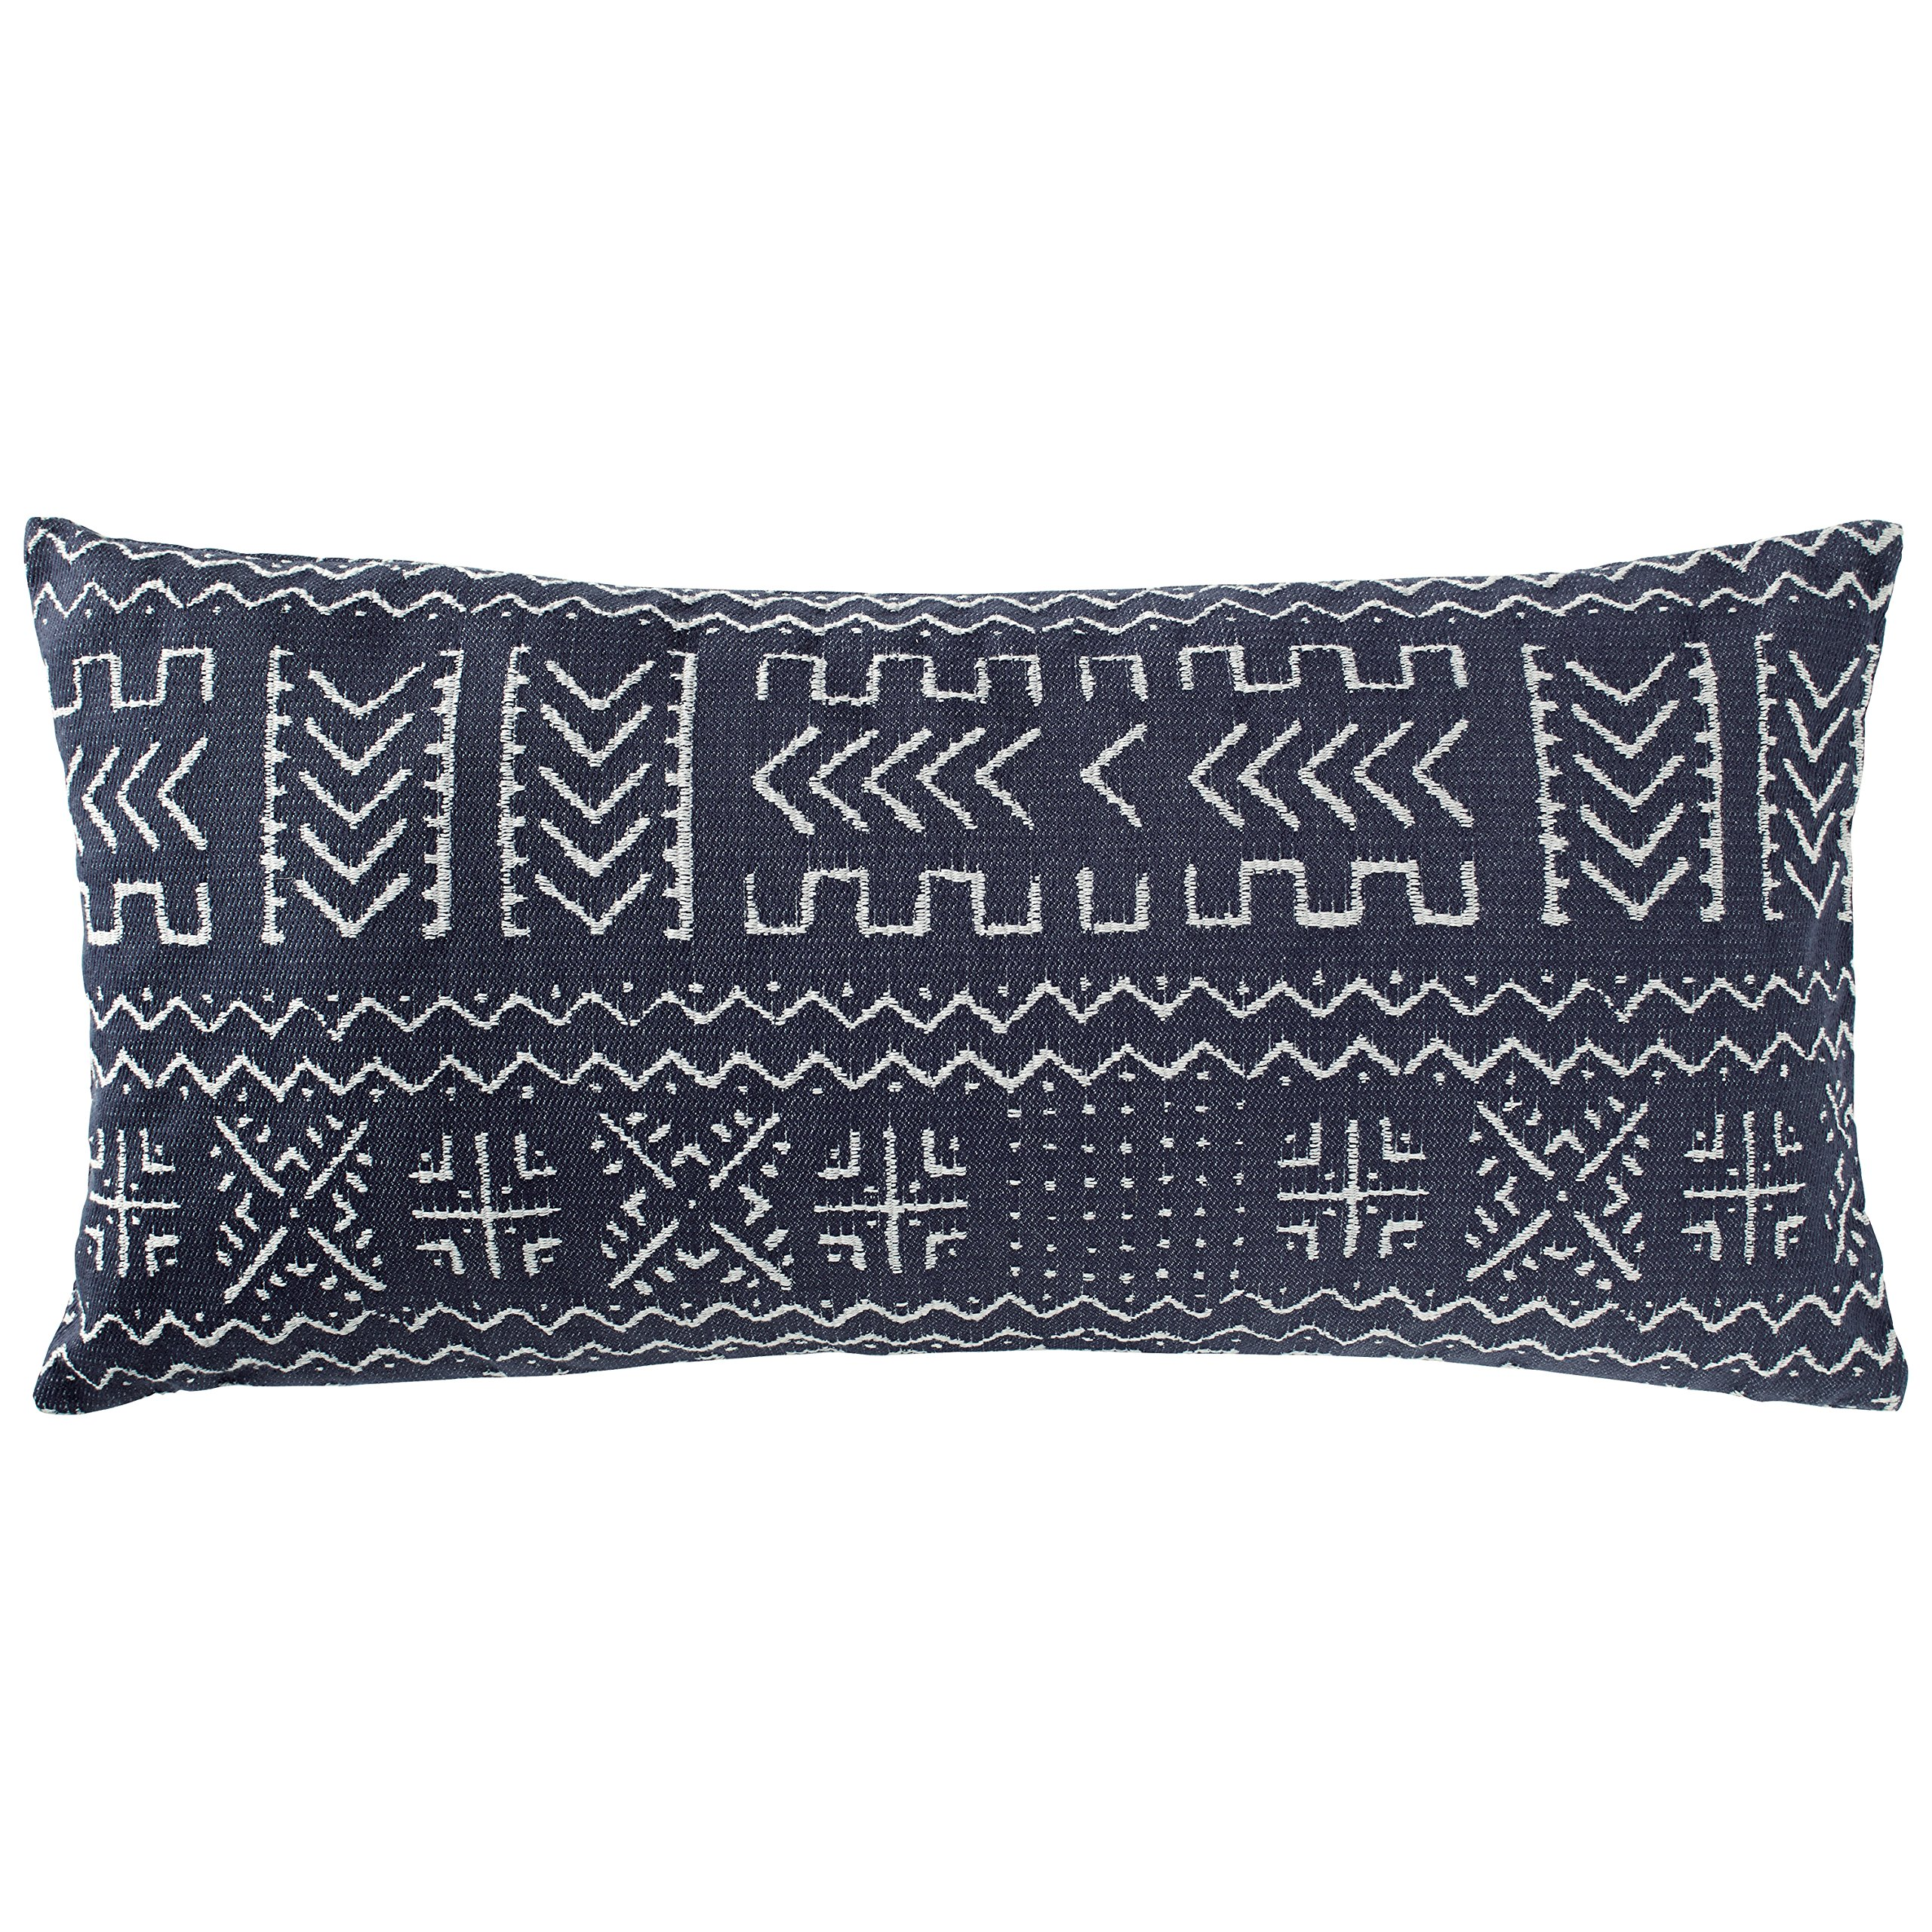 Rivet Mudcloth-Inspired Pillow, 12'' x 24'', Navy